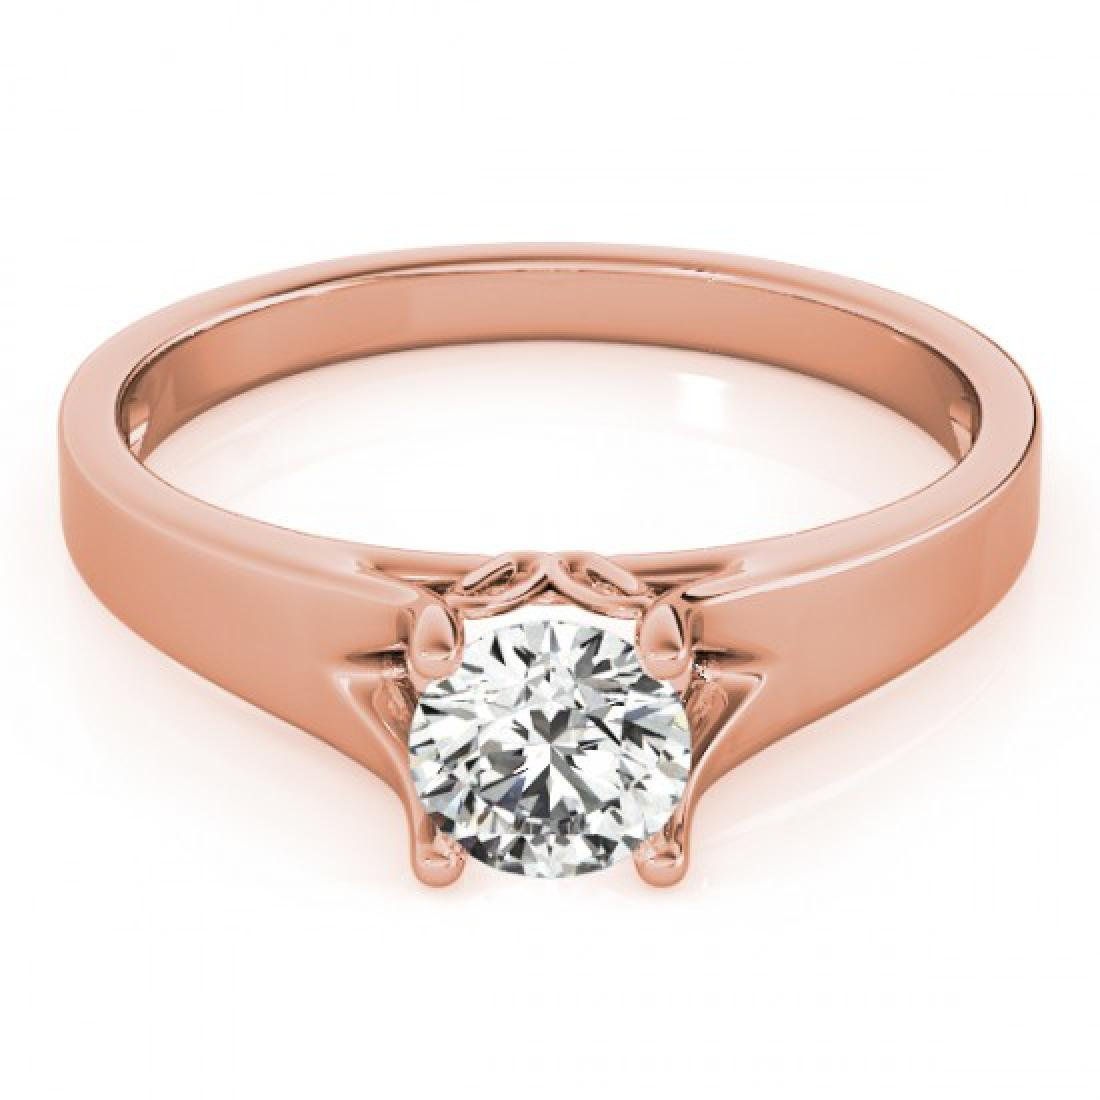 1.5 CTW Certified VS/SI Diamond Solitaire Ring 18K Rose